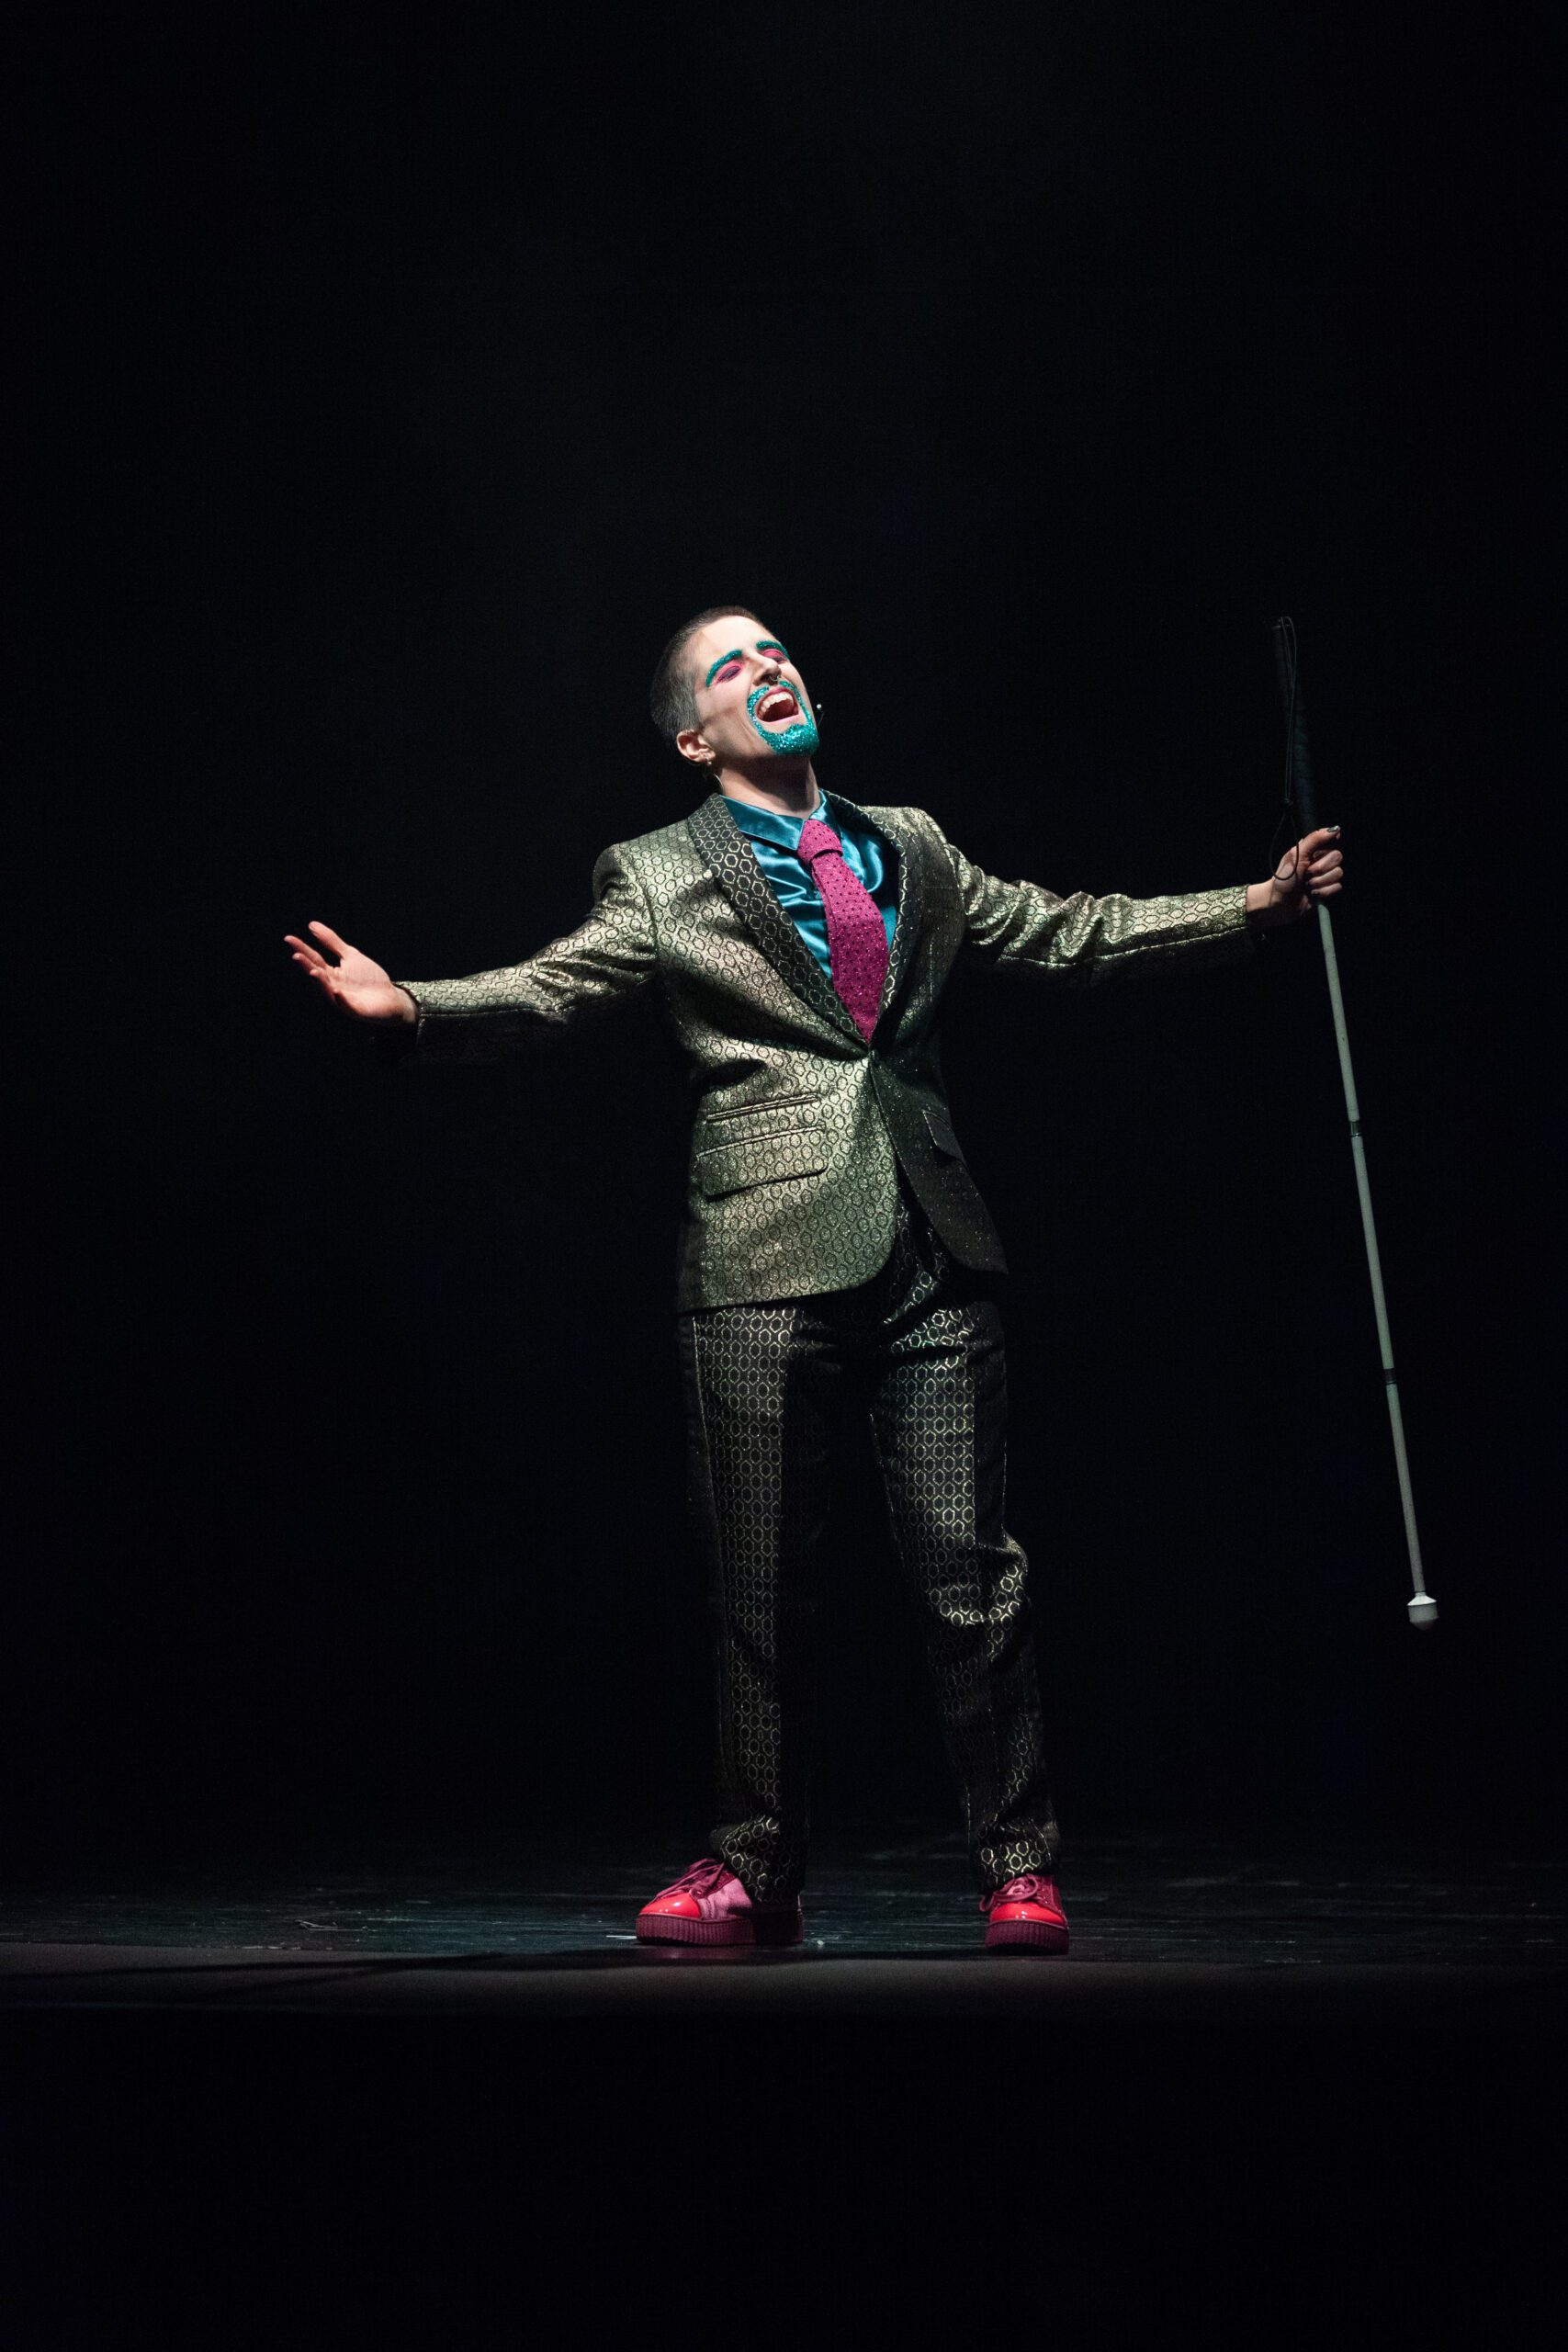 A slim white drag king in a suit and sparkly beard open their arms wide on a dark stage